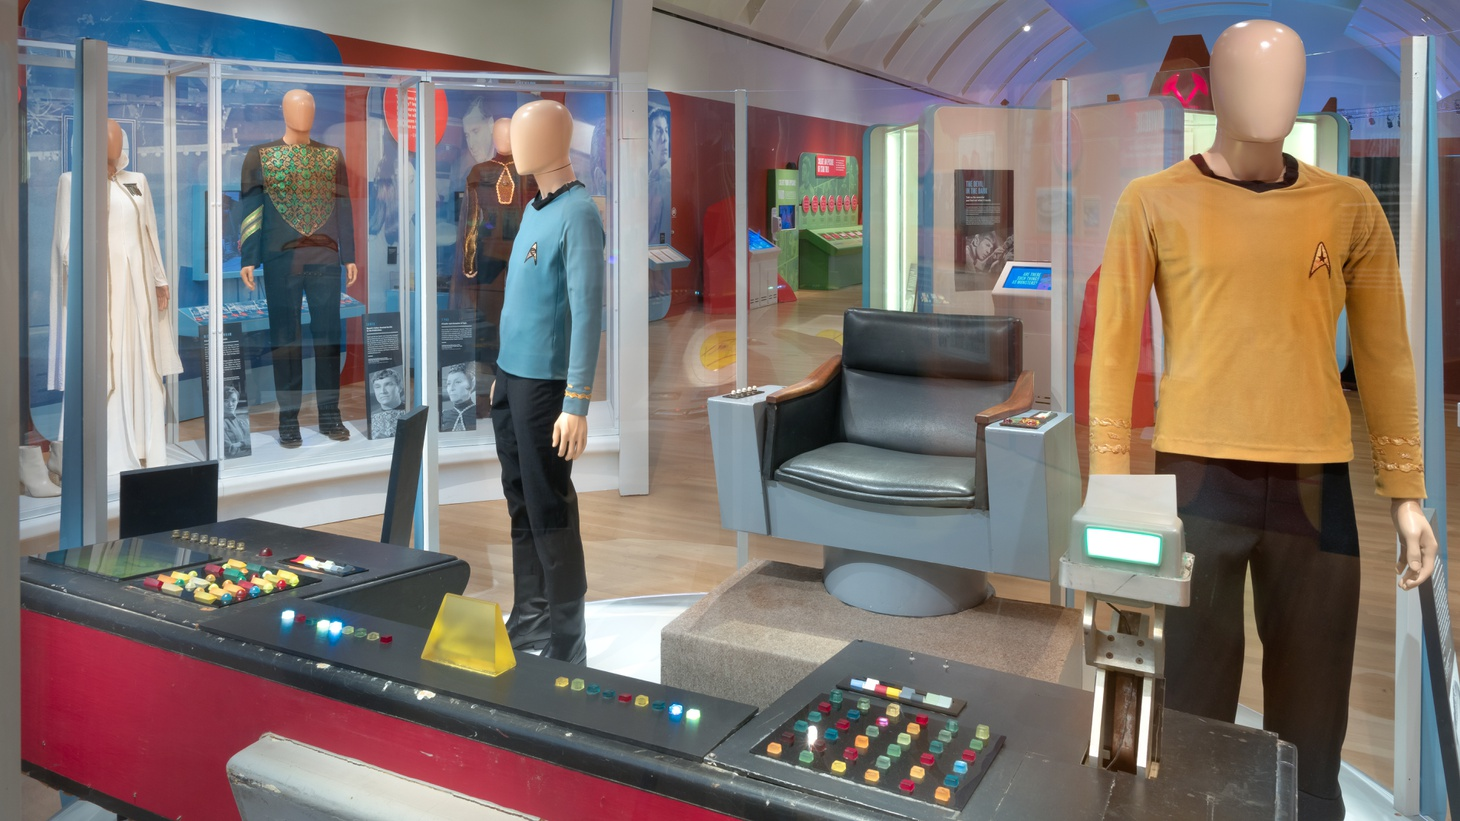 """""""Star Trek: Exploring New Worlds"""" includes set pieces and props from the series, including Captain Kirk's chair, a tunic worn by Spock in one of the """"Star Trek"""" films, and the main navigation console from the bridge of the USS Enterprise."""